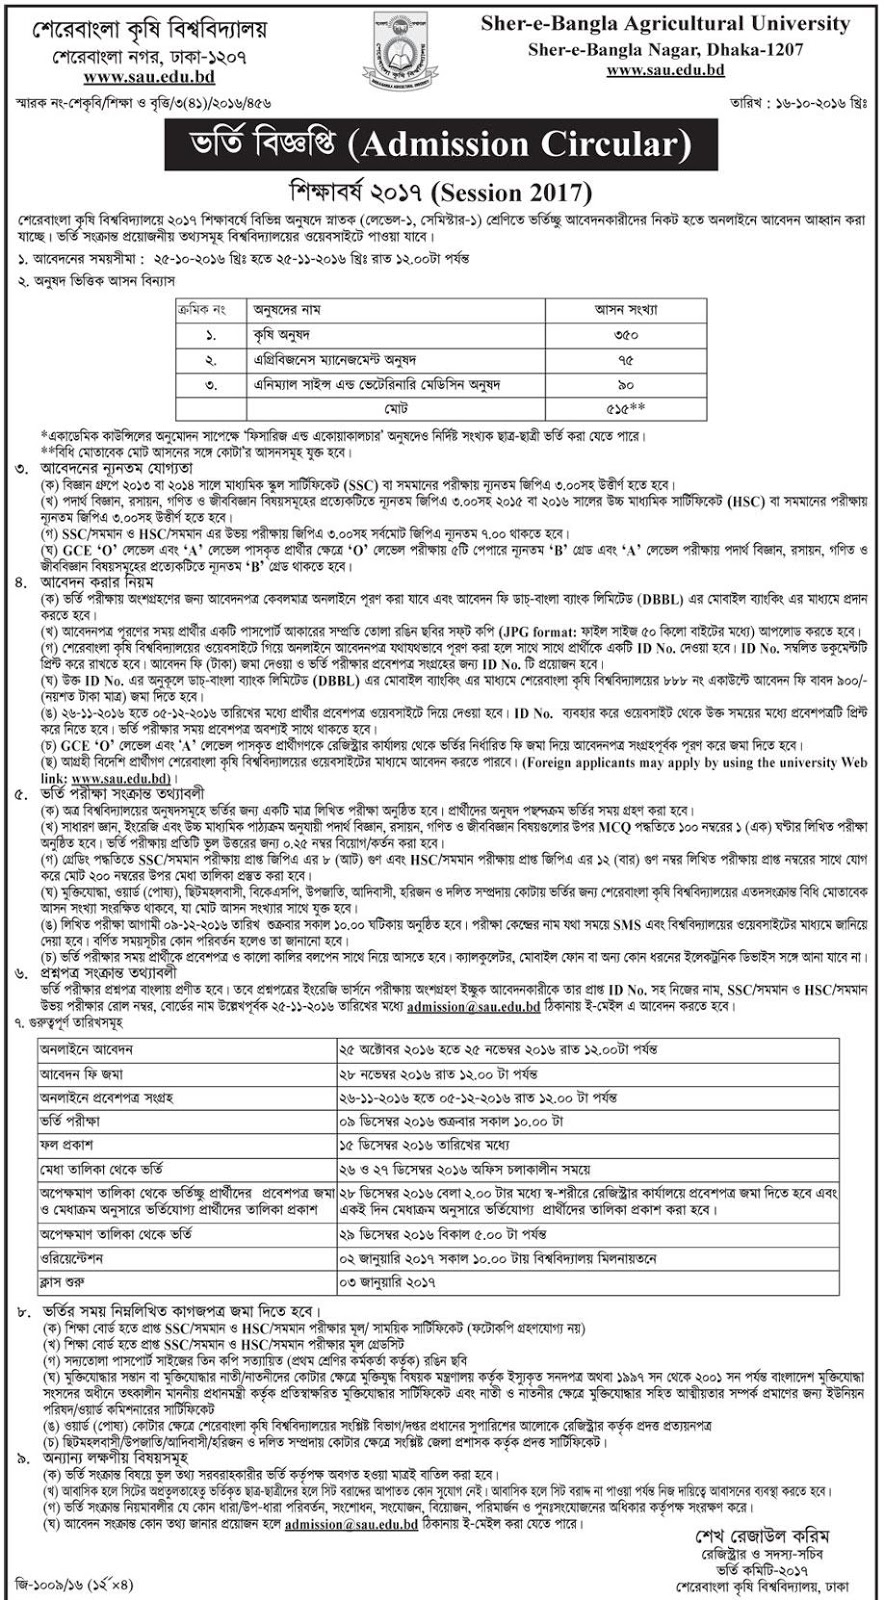 Sher-e-Bangla Agricultural University Admission Circular